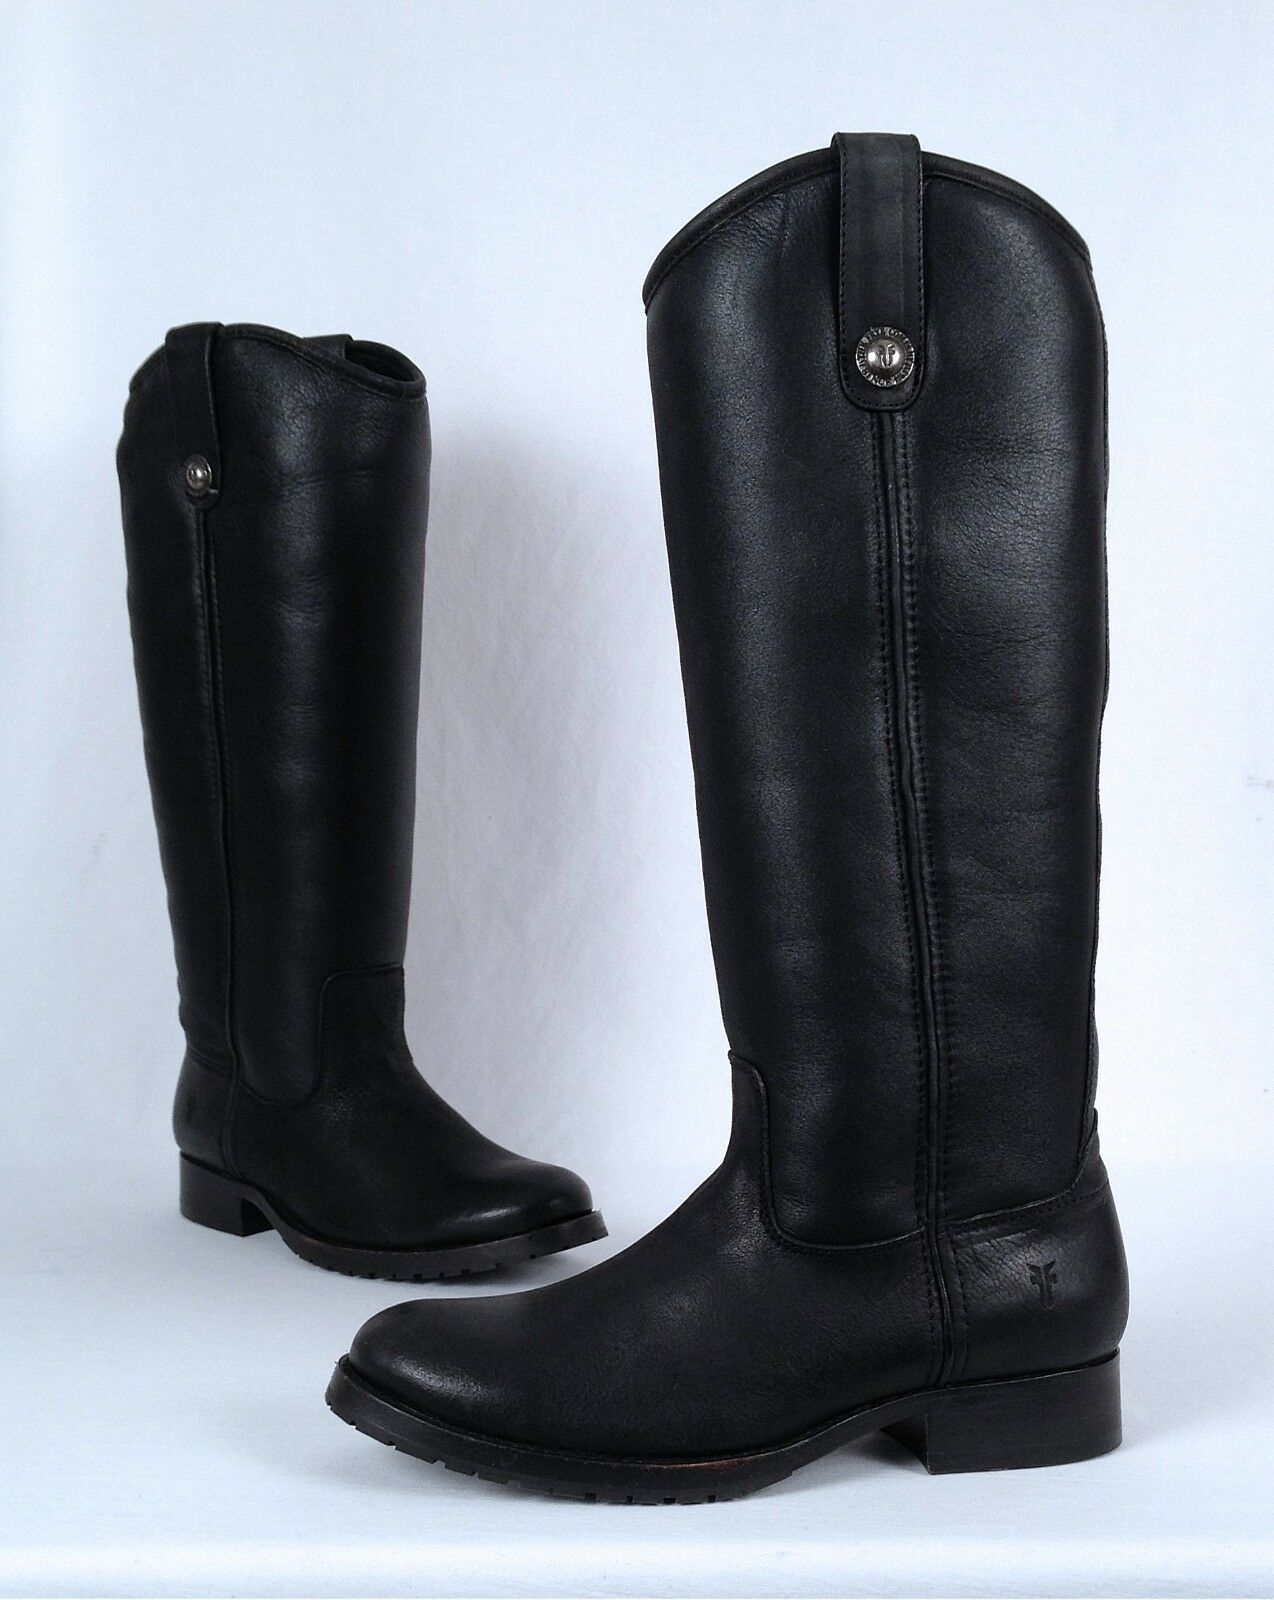 NEW   Frye 'Melissa' - Button Boot- Shearling/Fur Lined - 'Melissa' Size 6 B  (B29) 74648d